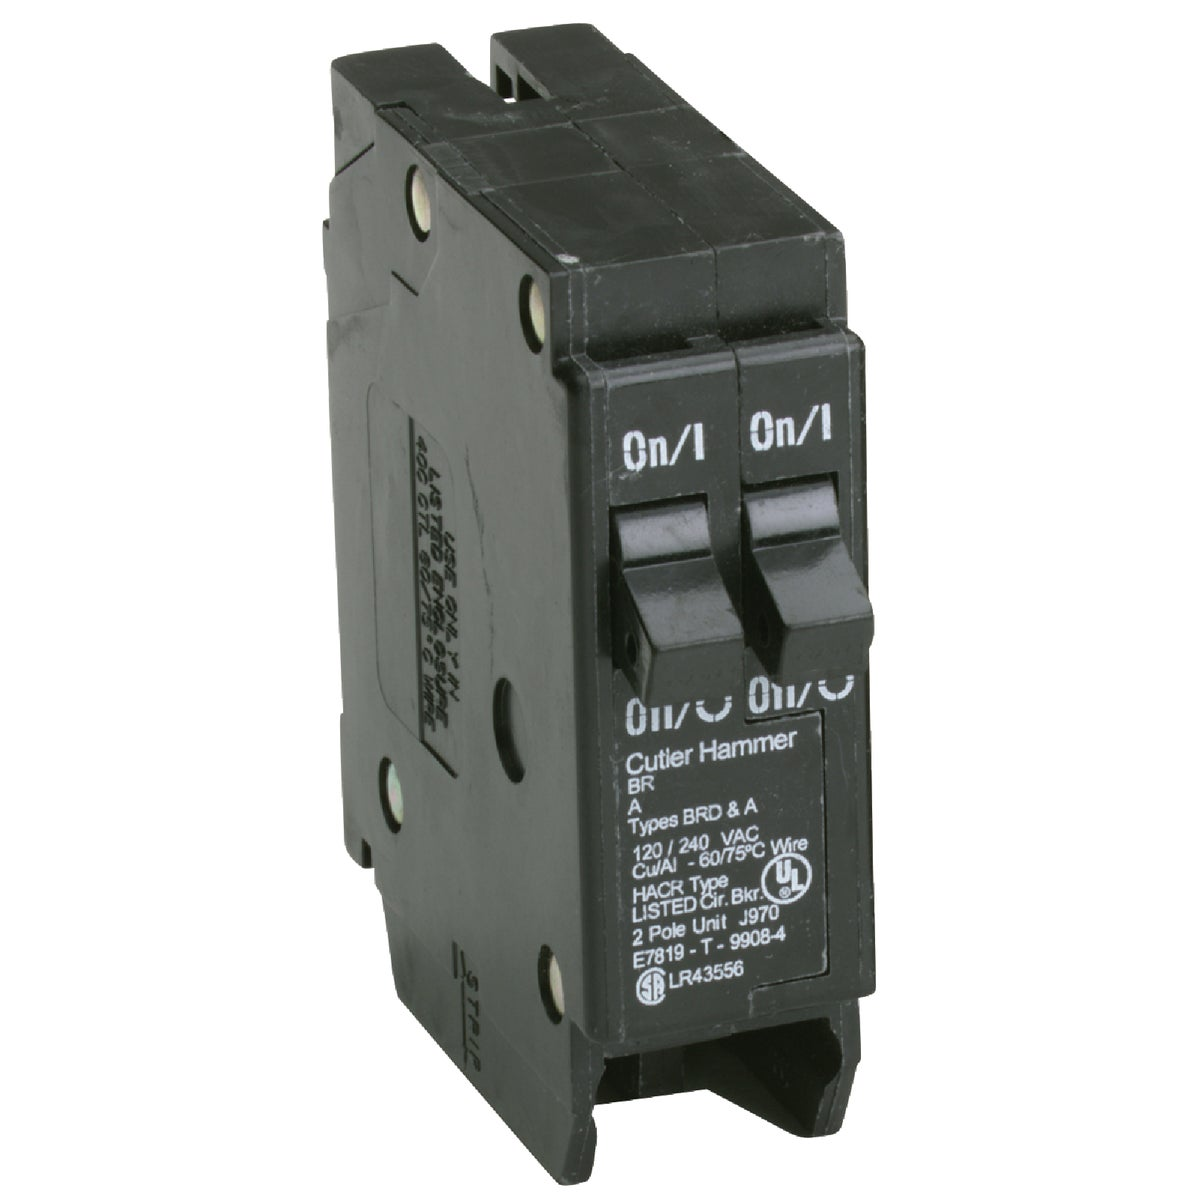 30A/30A CIRCUIT BREAKER - BR3030 by Eaton Corporation